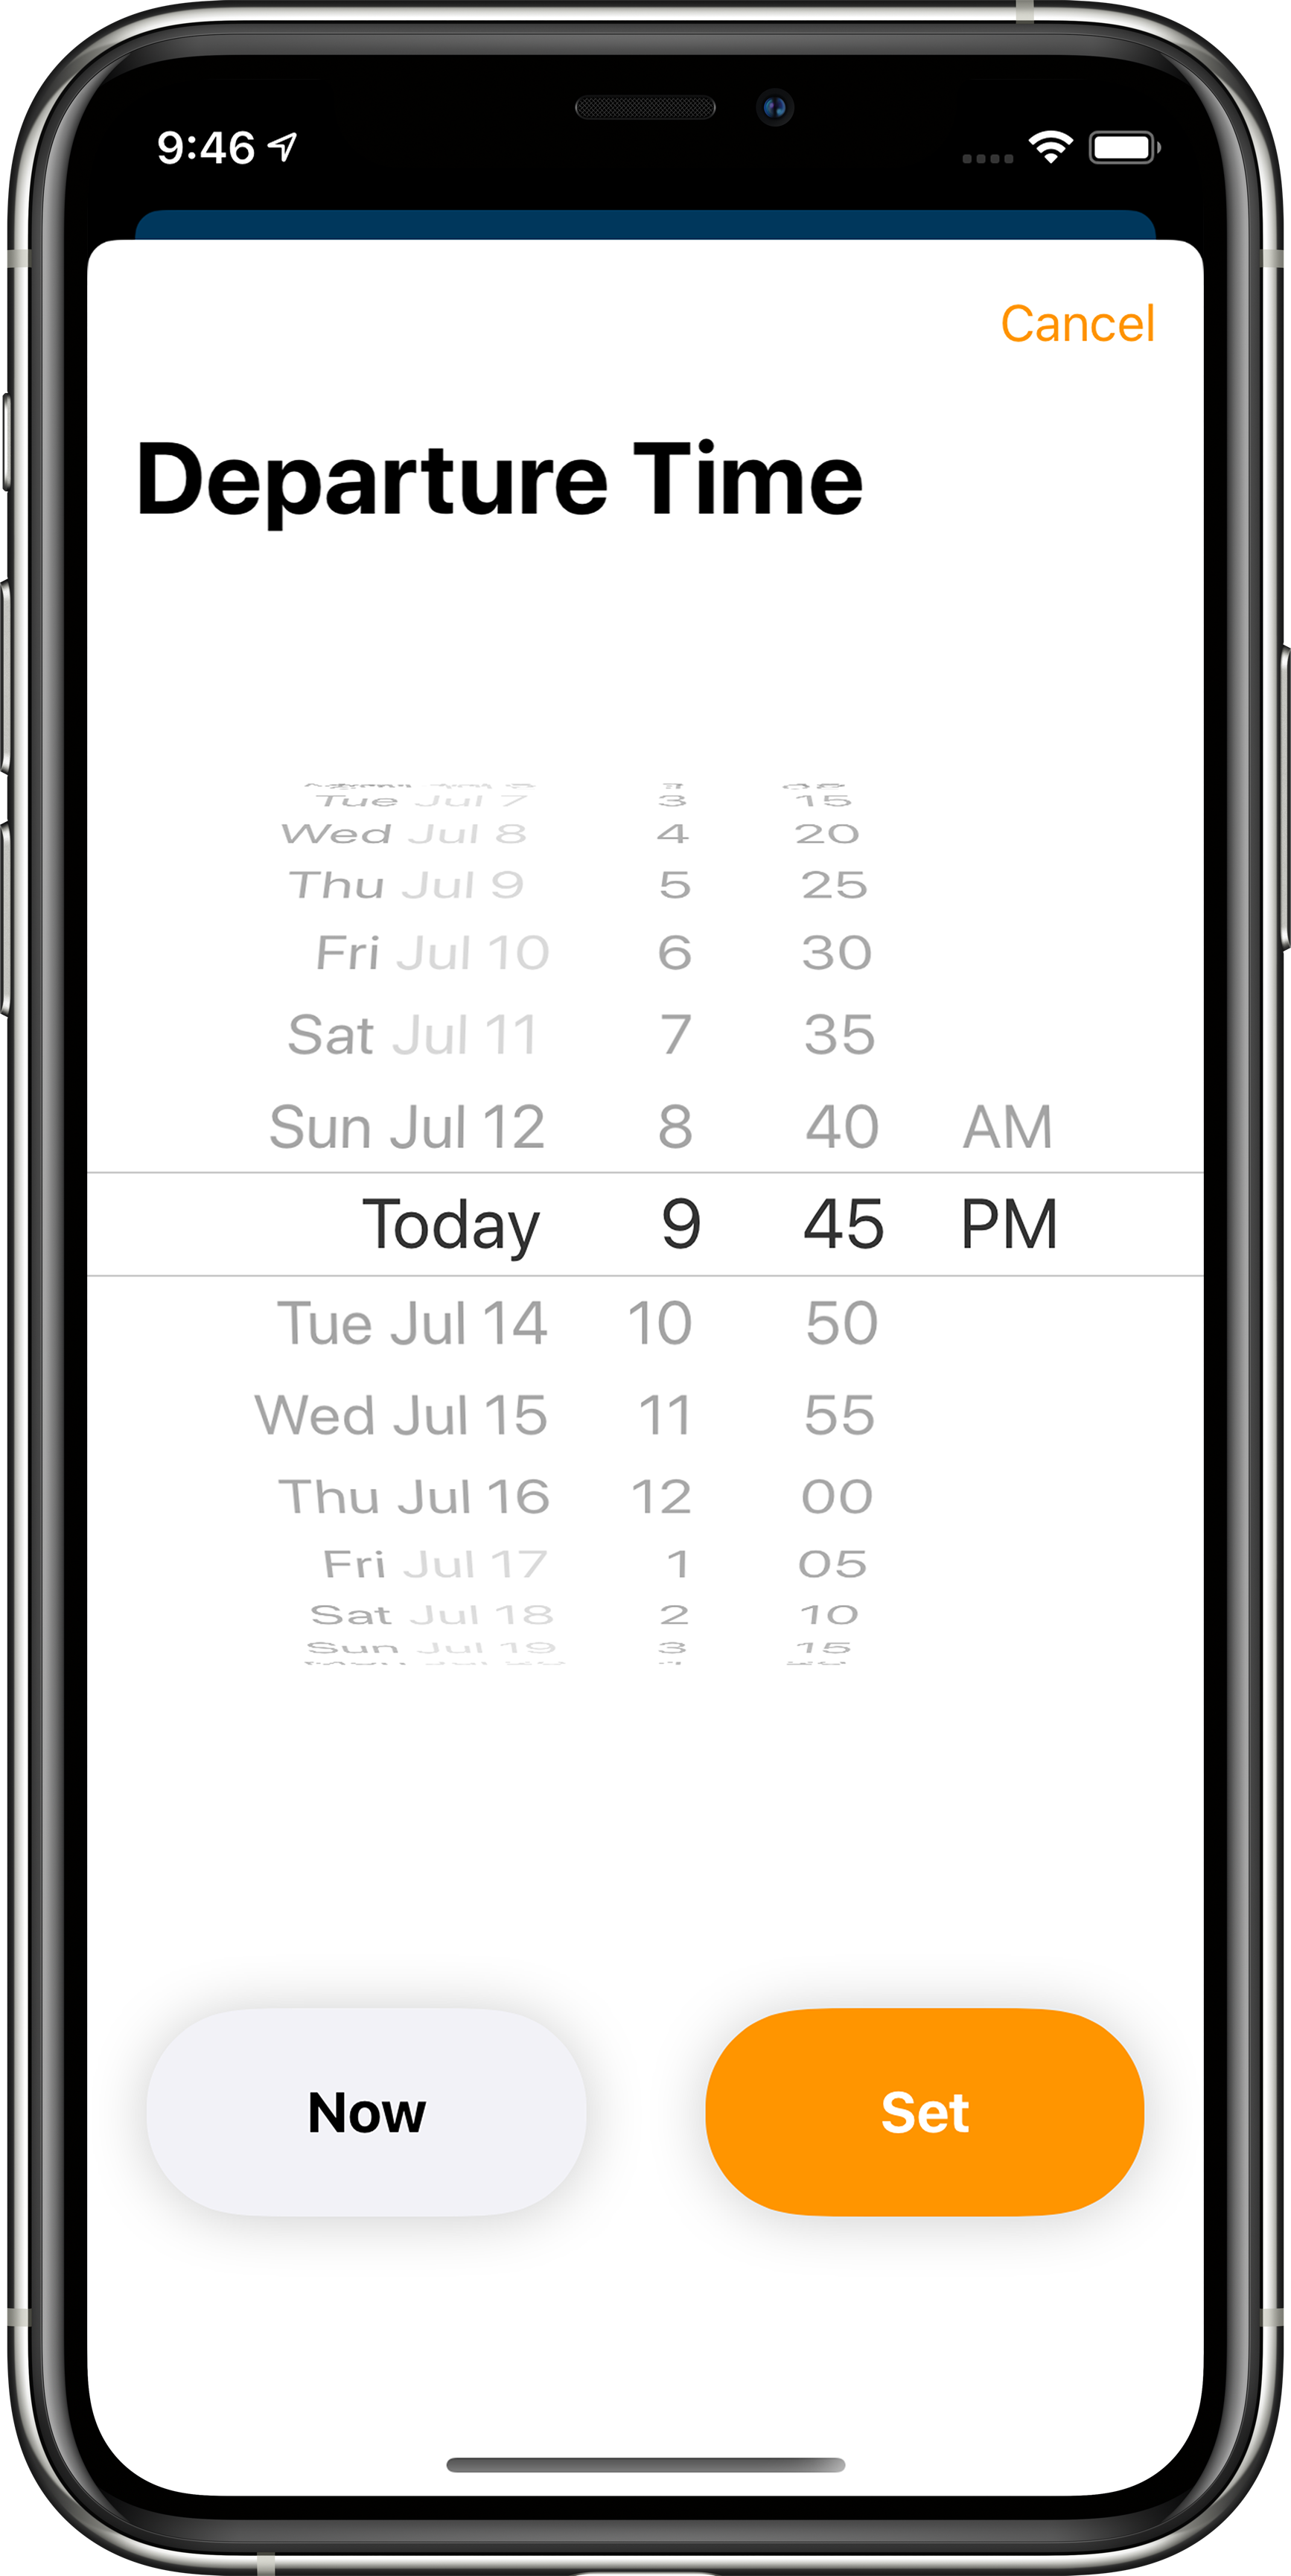 App showing departure time settings